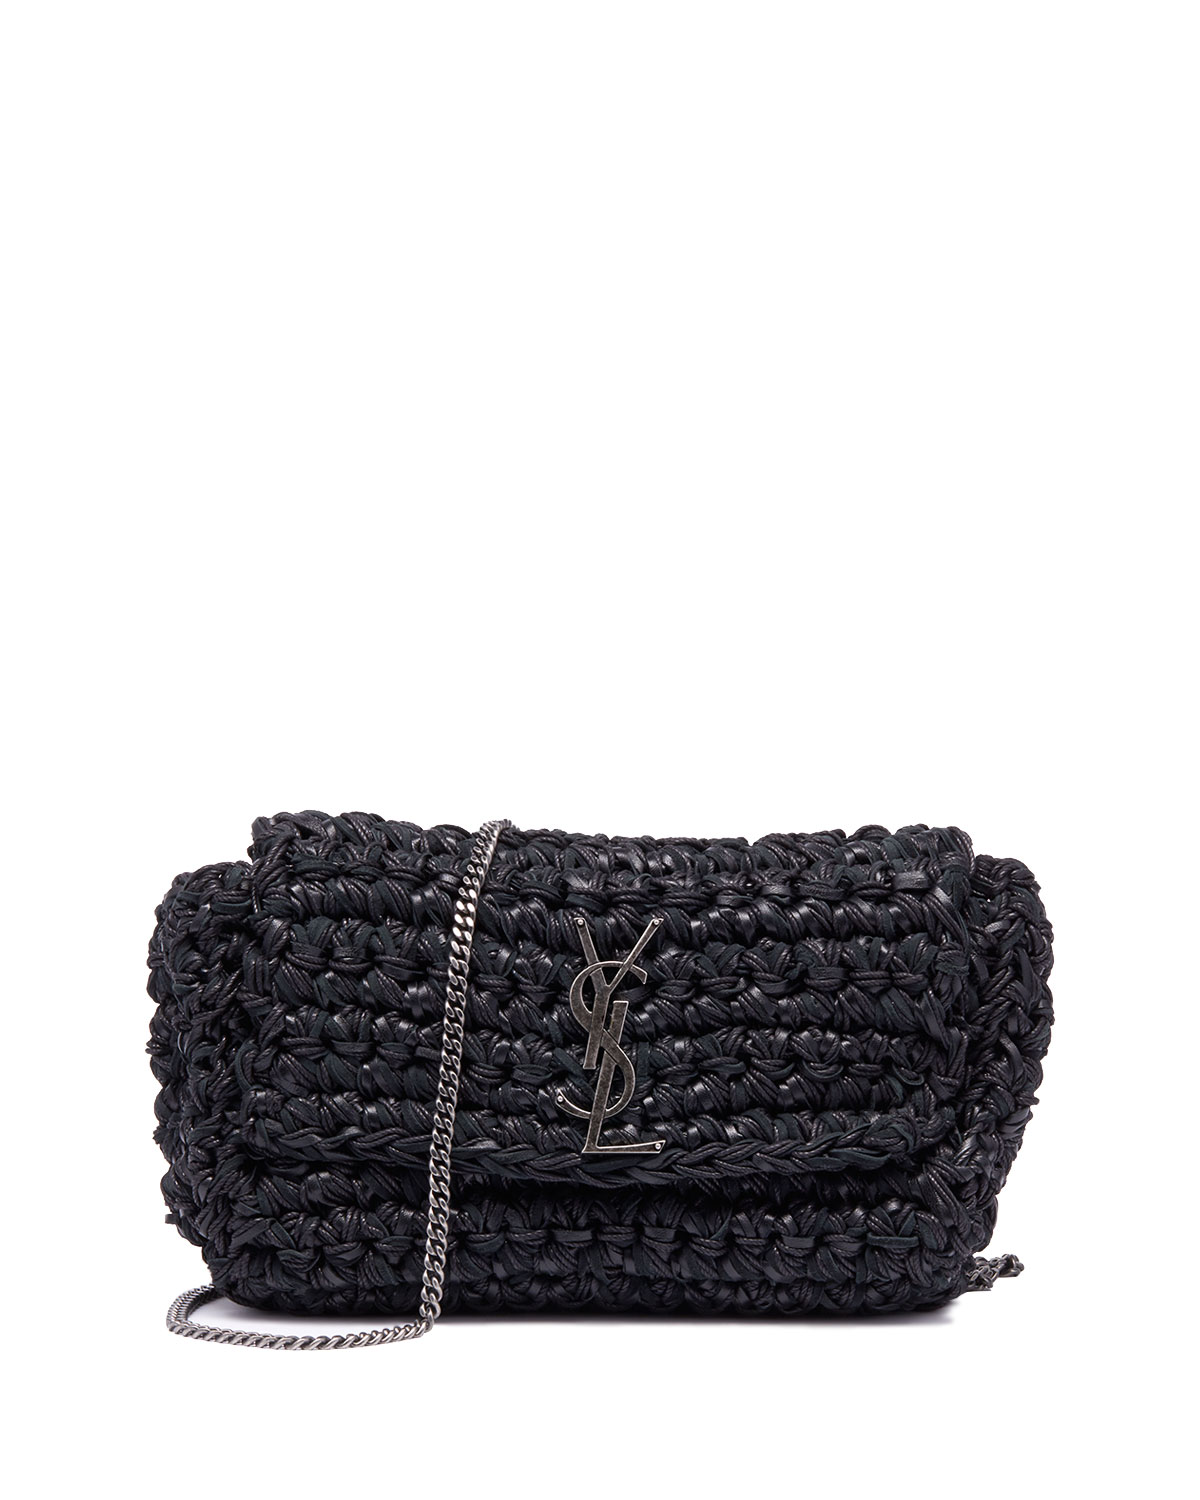 829d733772 Saint Laurent Kate Medium YSL Monogram Raffia Crossbody Bag